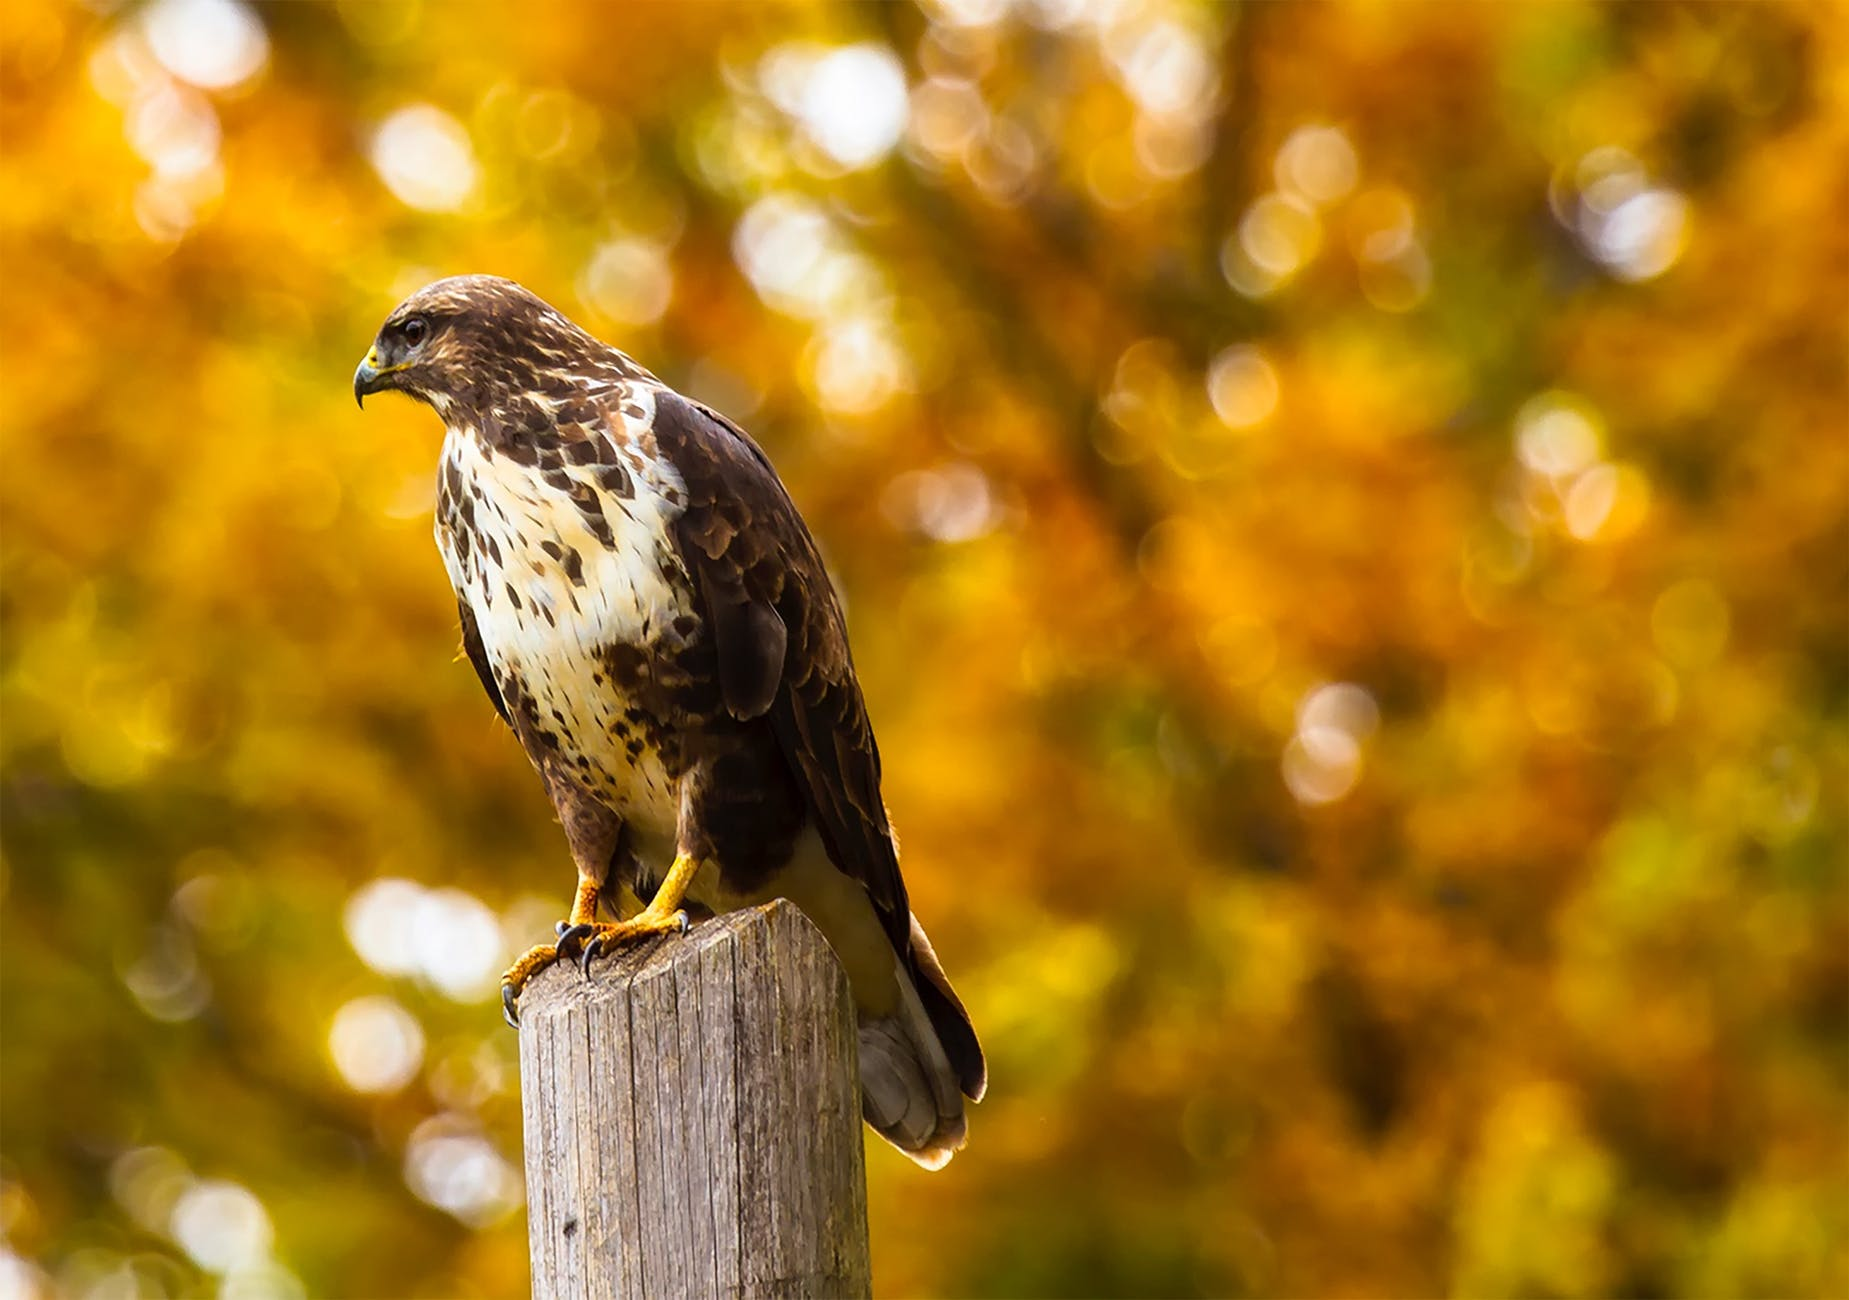 close up of eagle perching on outdoors